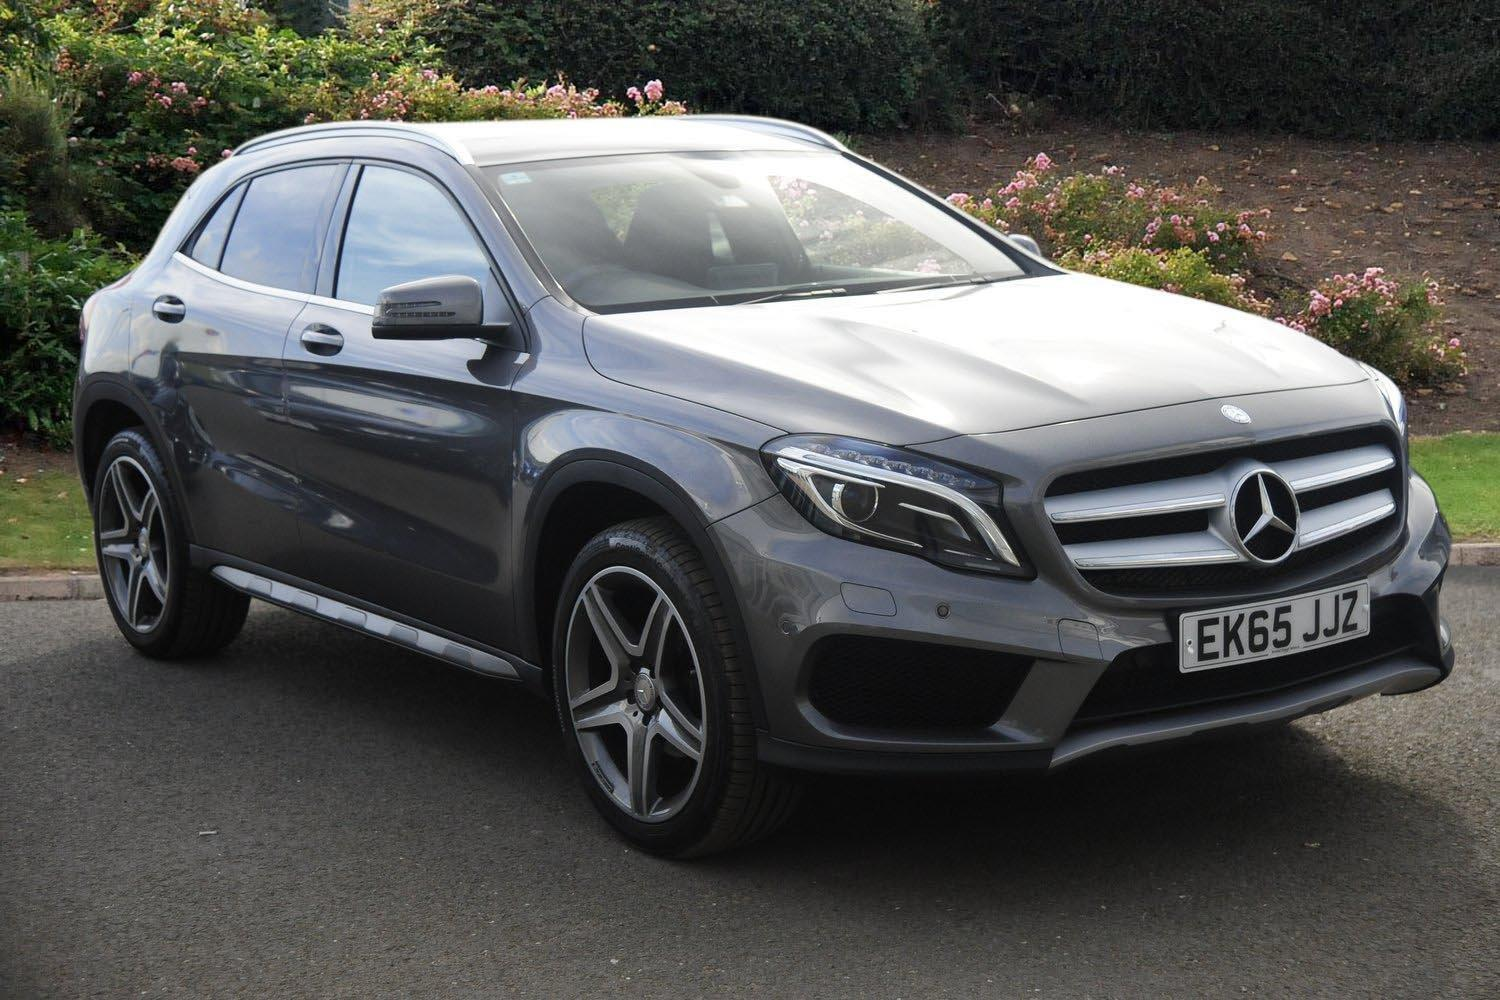 used mercedes benz gla gla 200d 4matic amg line 5dr auto premium diesel hatchback for sale. Black Bedroom Furniture Sets. Home Design Ideas